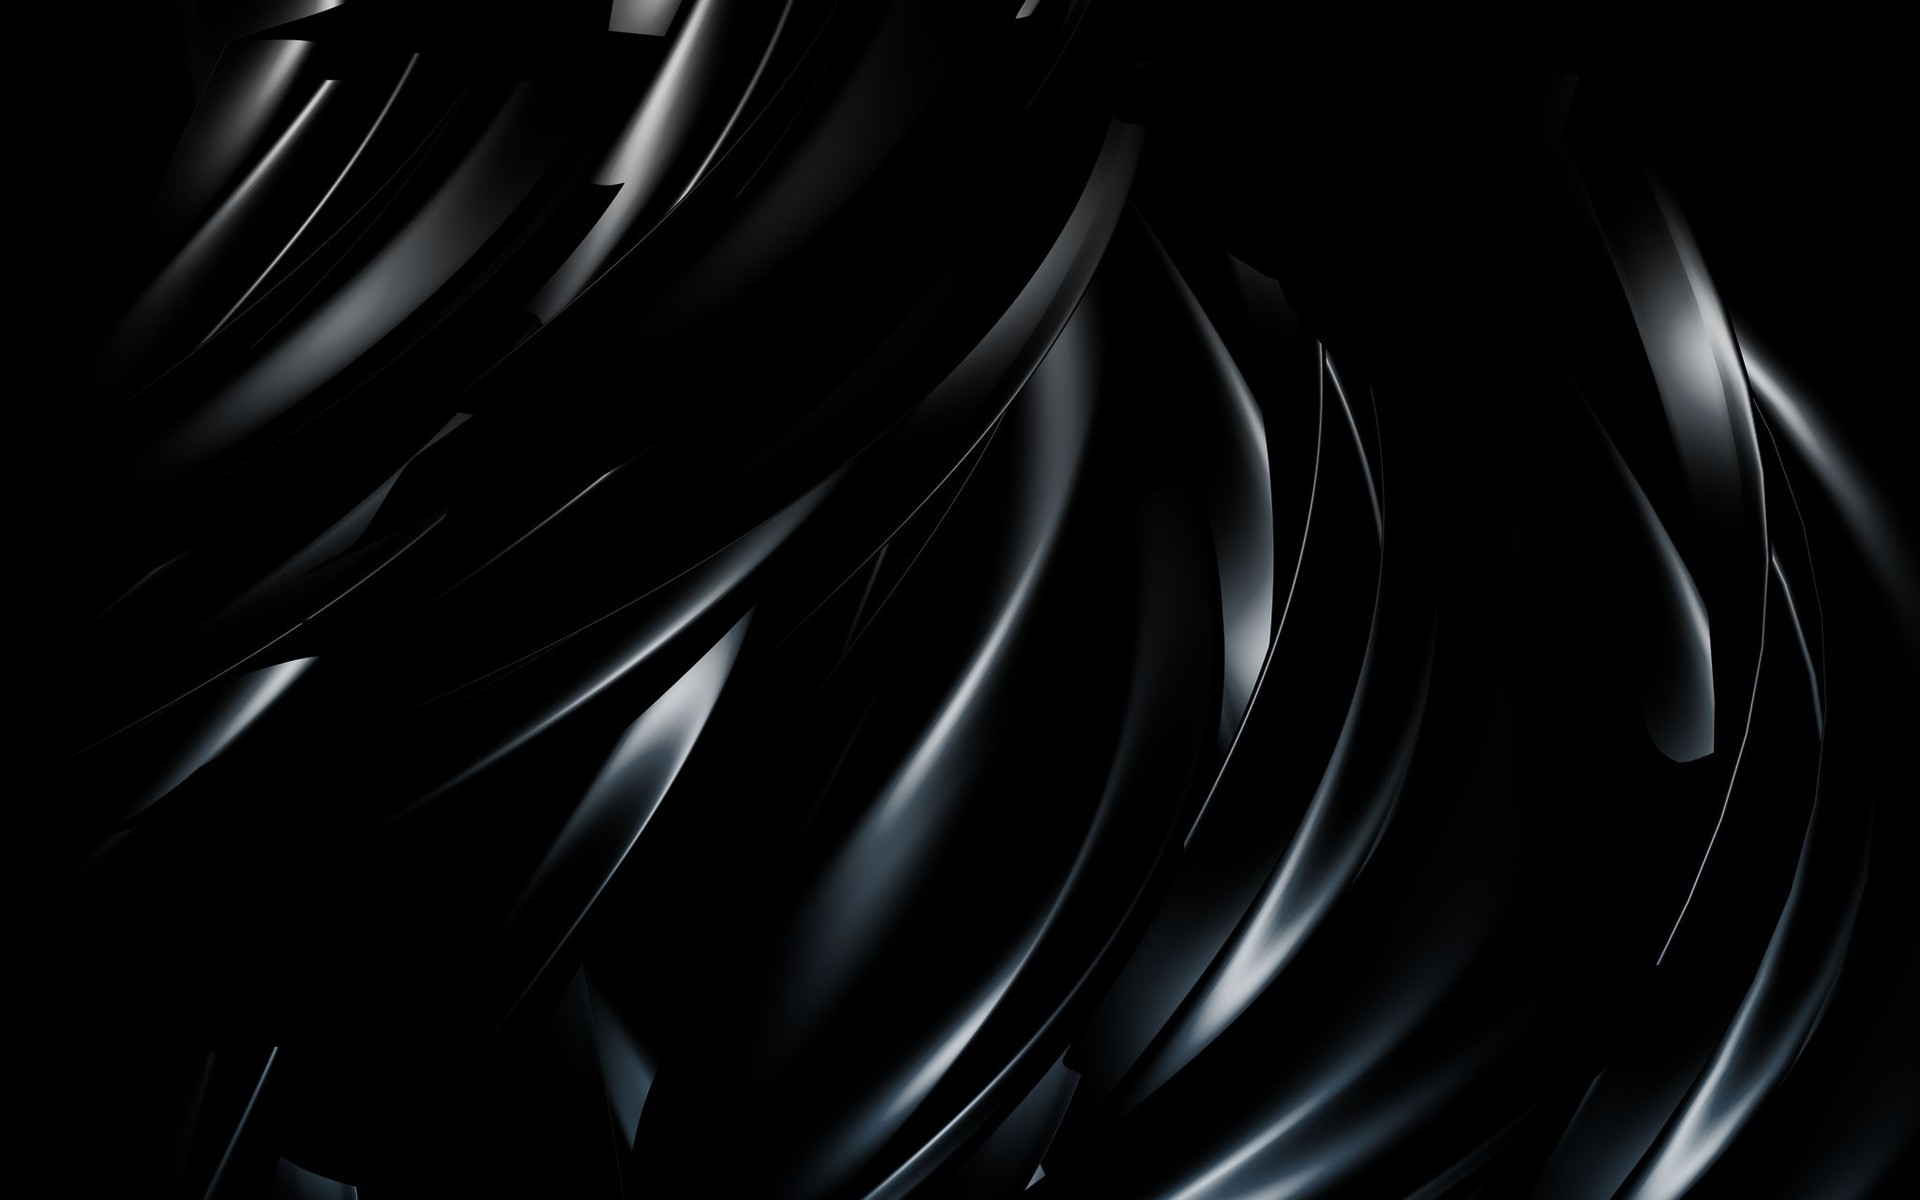 Black abstract background download free cool full hd for Black and grey wallpaper designs